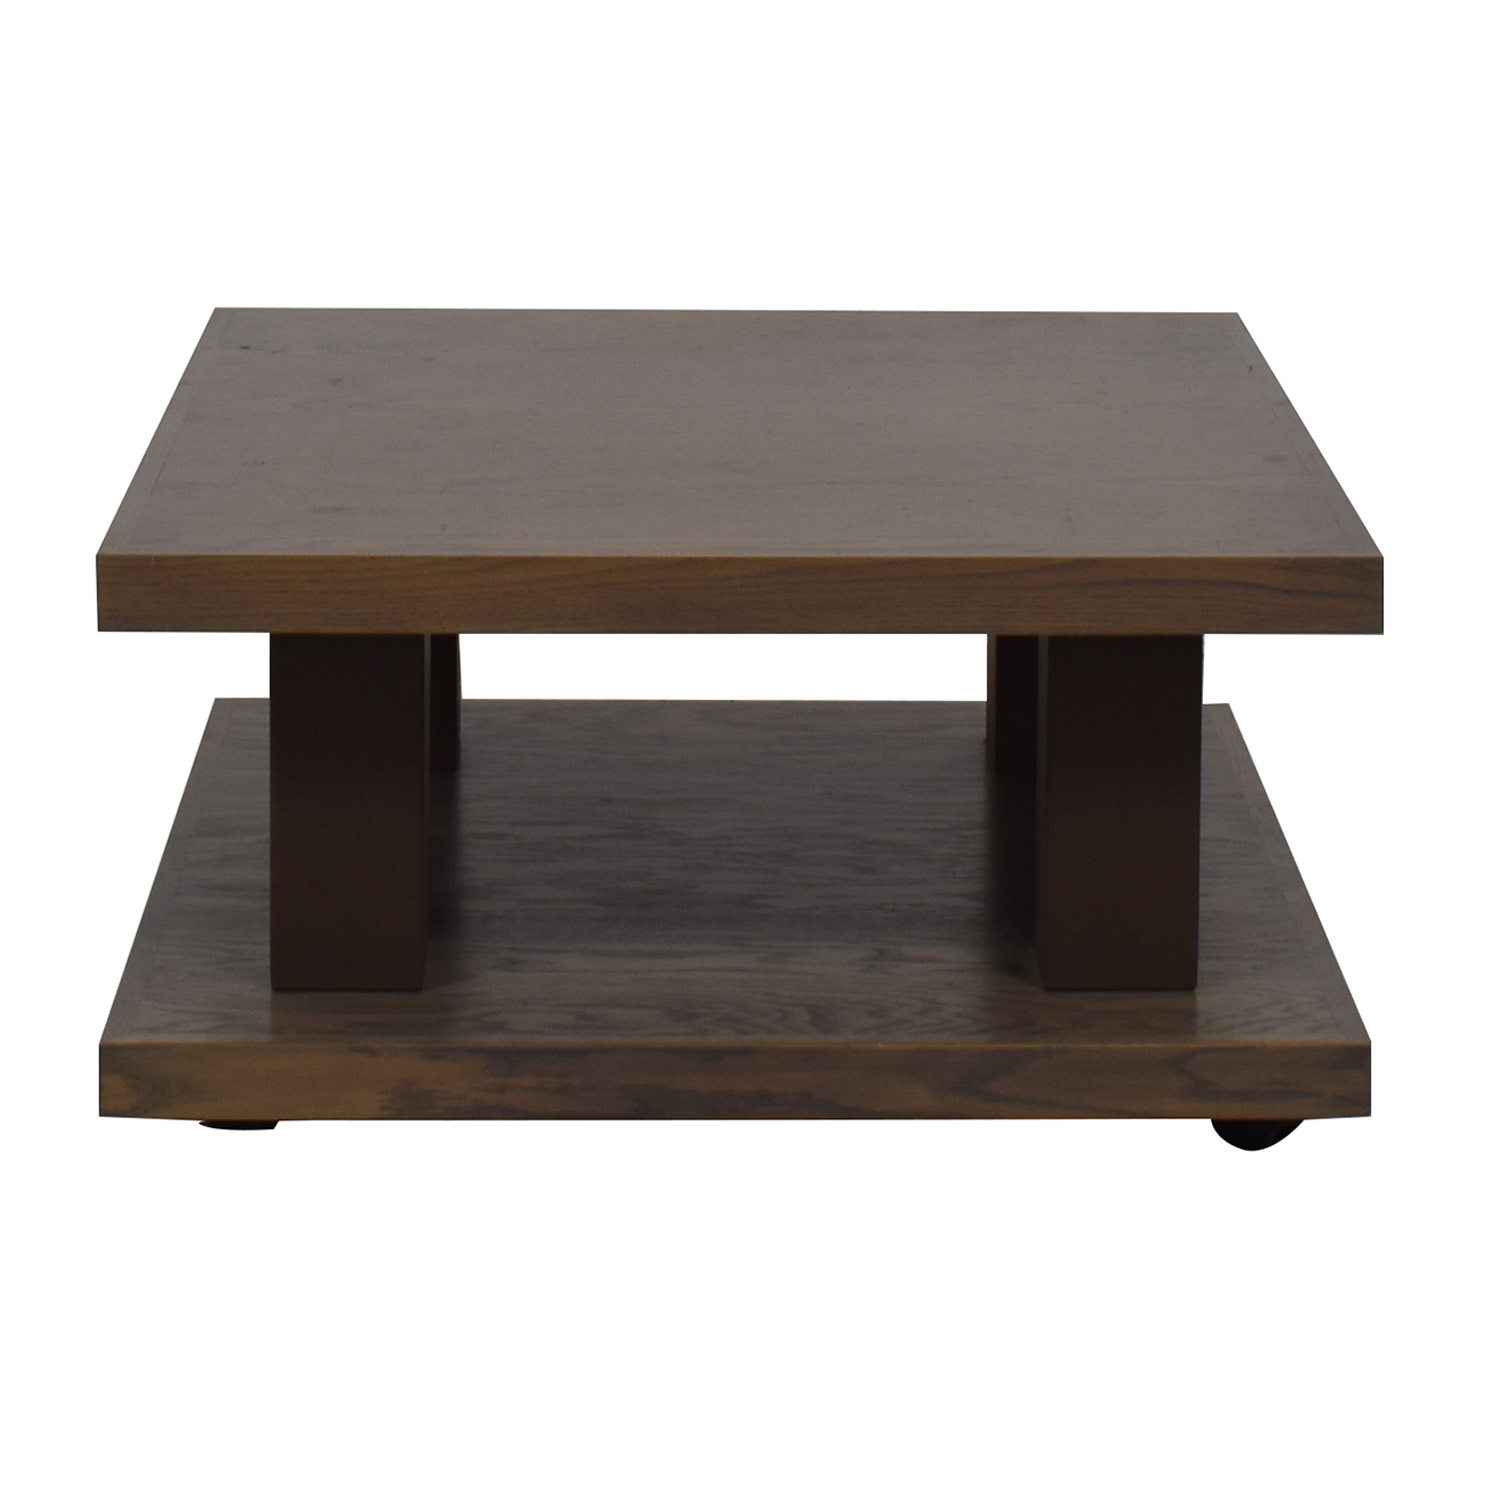 shop aspenhome Grey Driftwood Square Coffee Table On Wheels aspenhome Tables